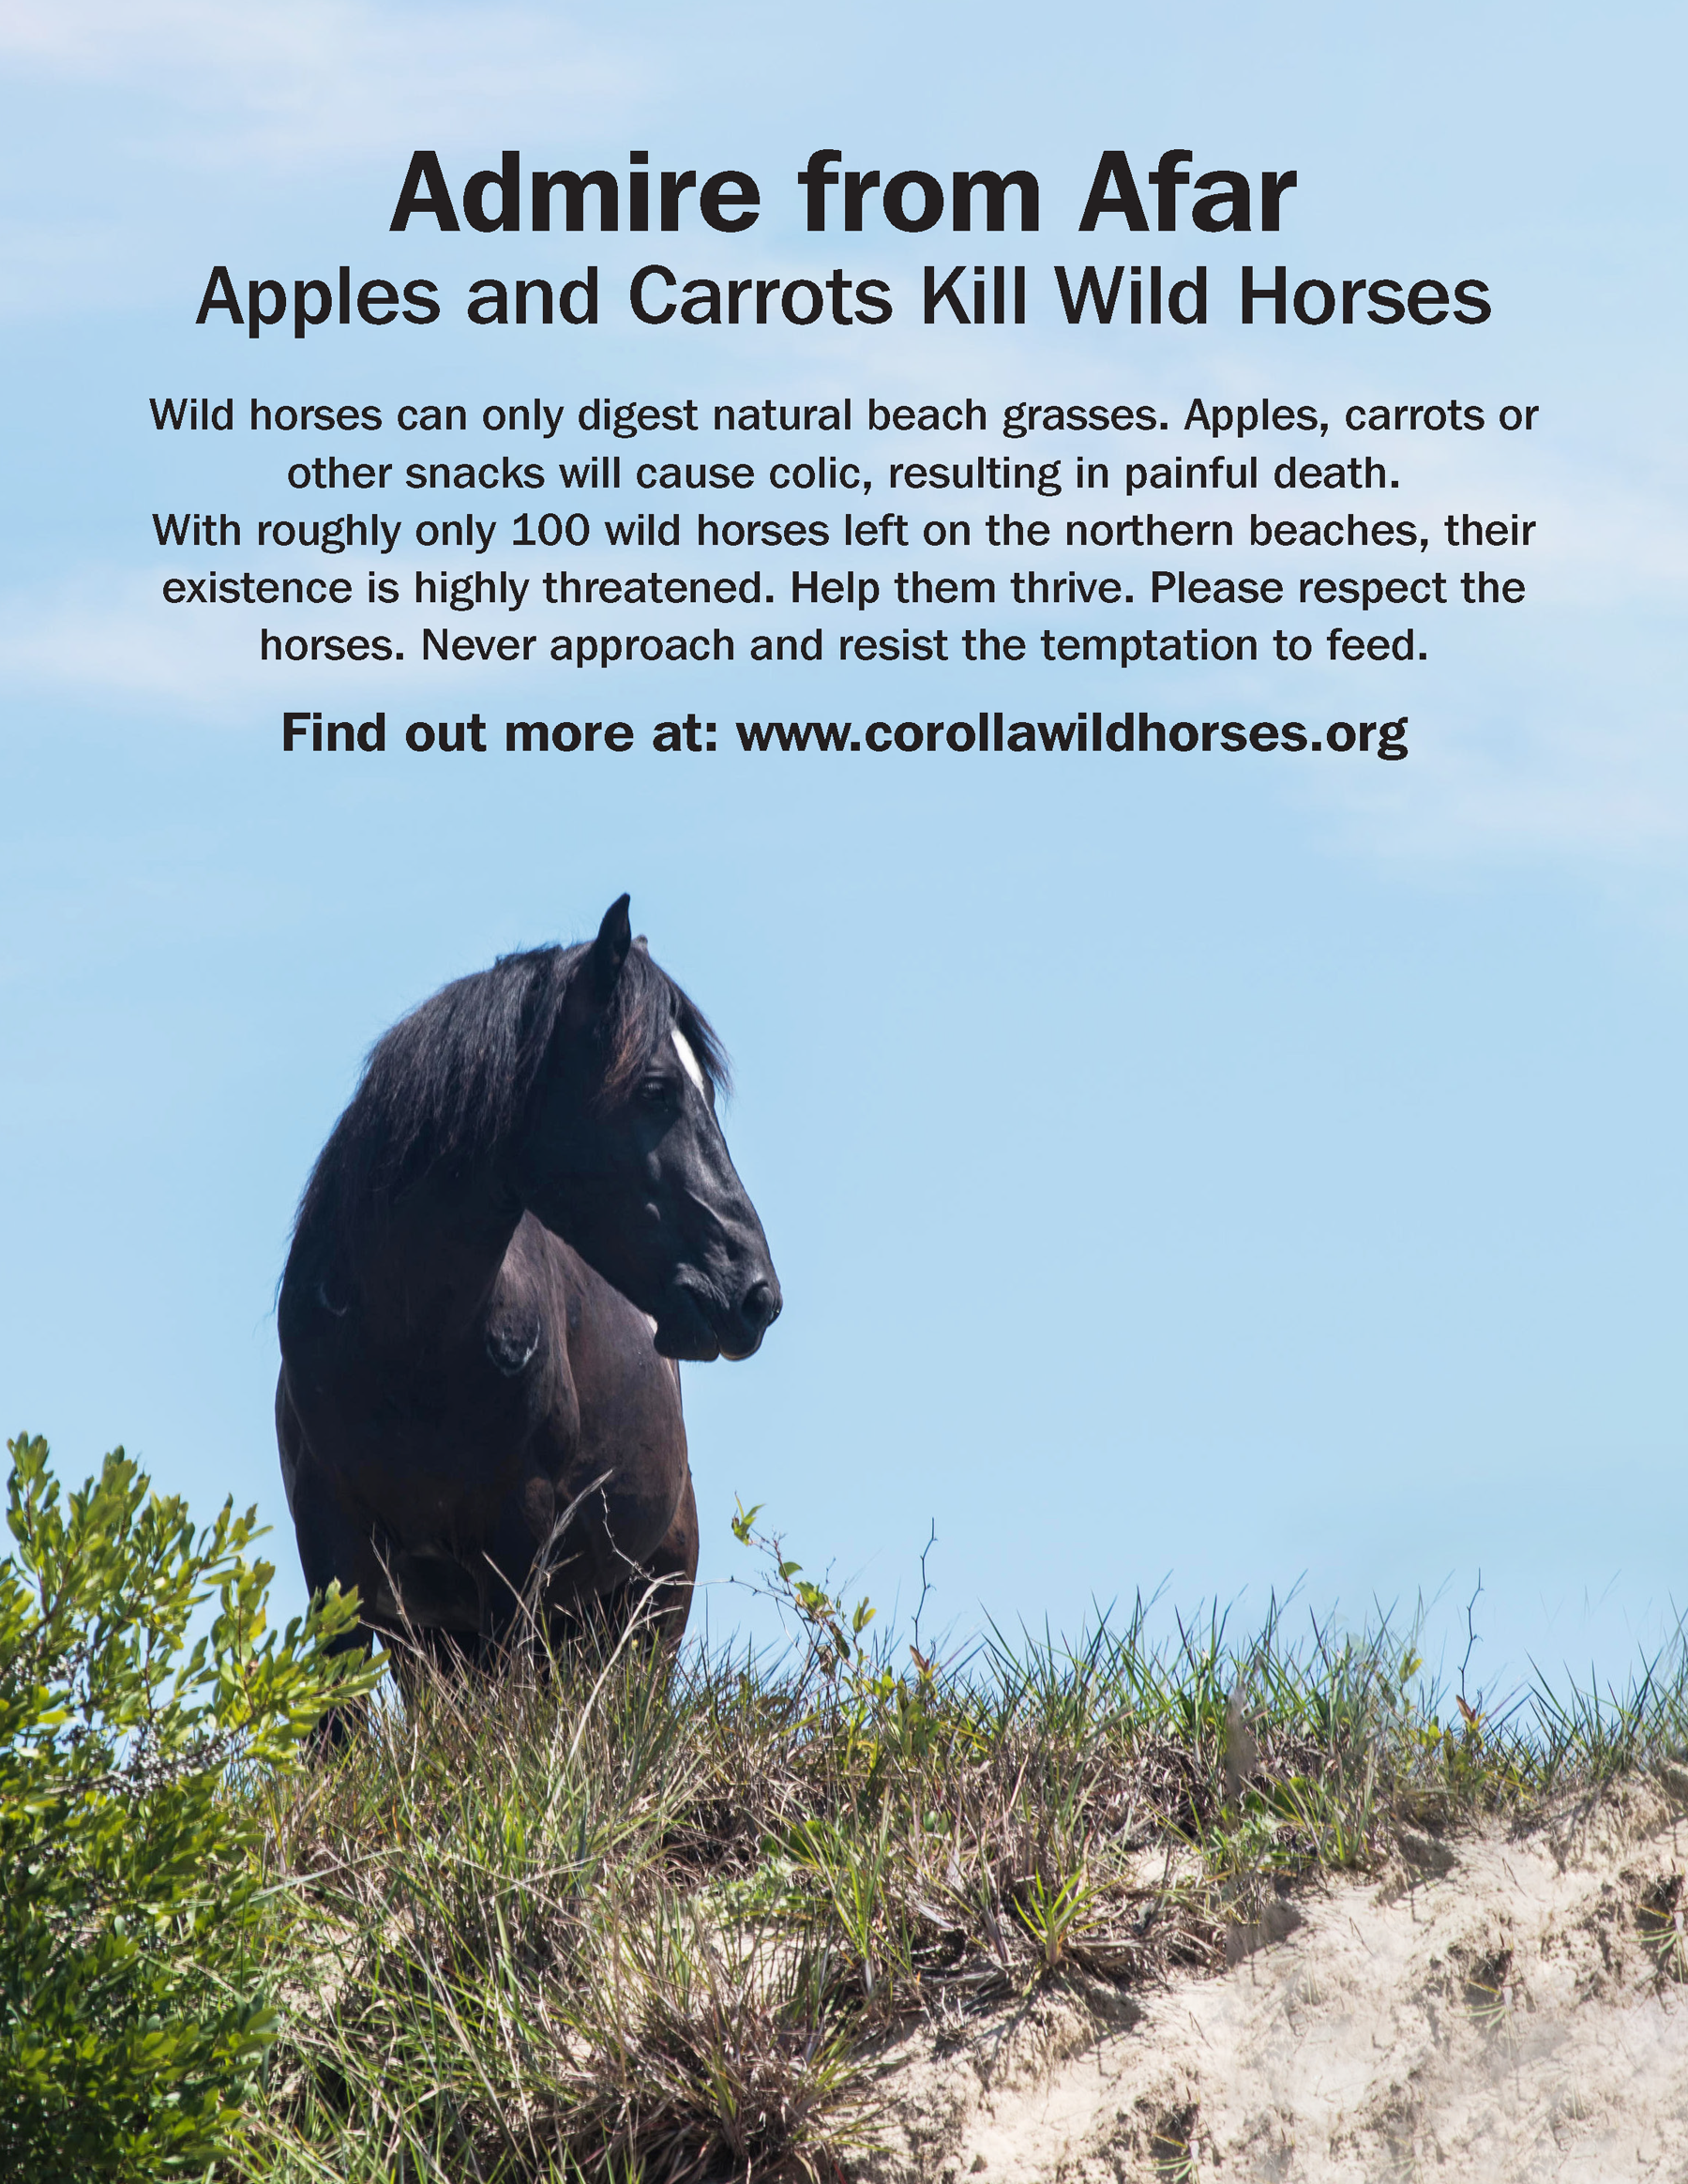 Admire Wild Horses from afar